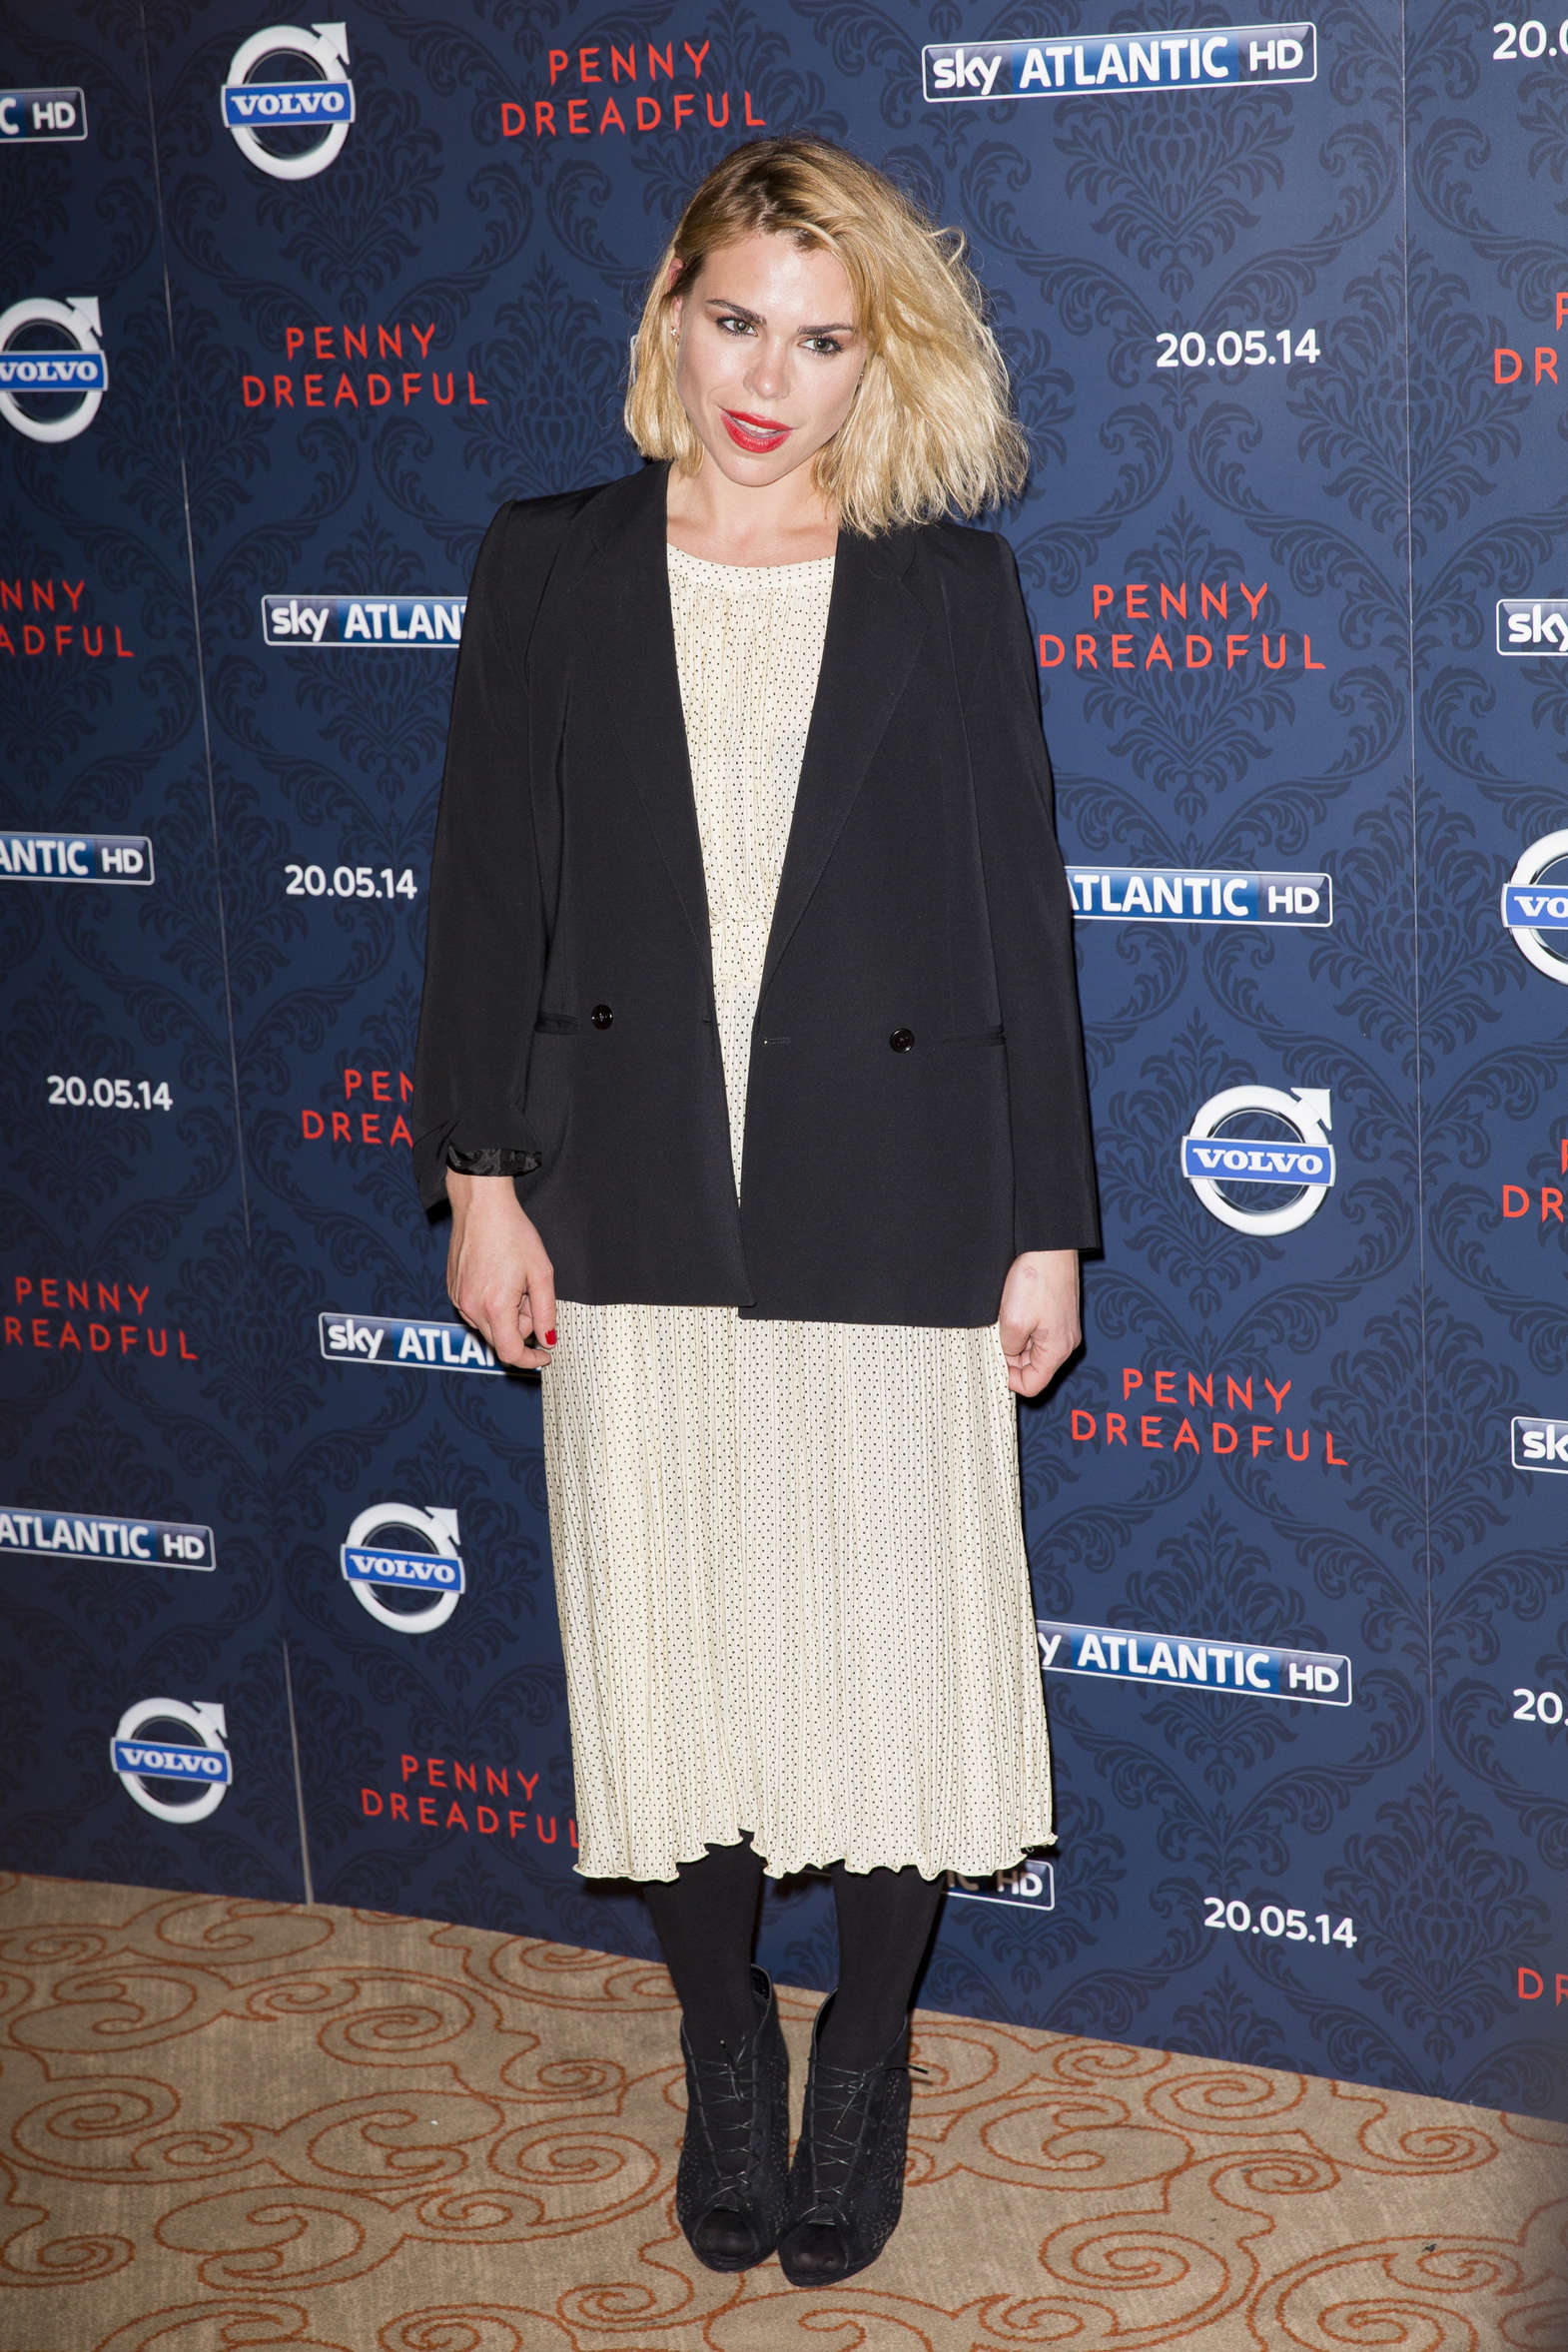 Billie Piper Penny Dreadful London premiere